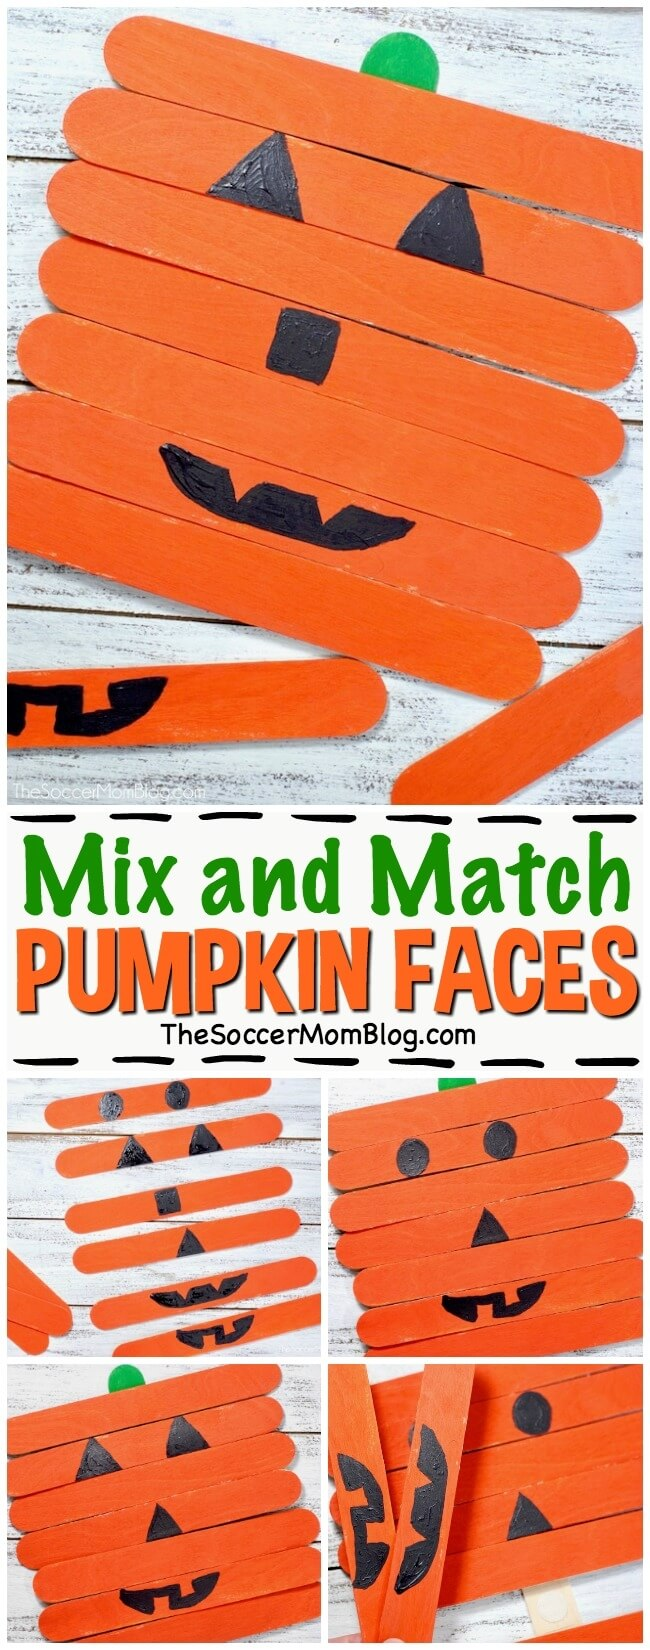 Kids will have a blast making lots of funny pumpkin faces with this easy Halloween craft! CLICK FOR VIDEO TUTORIAL & DIRECTIONS